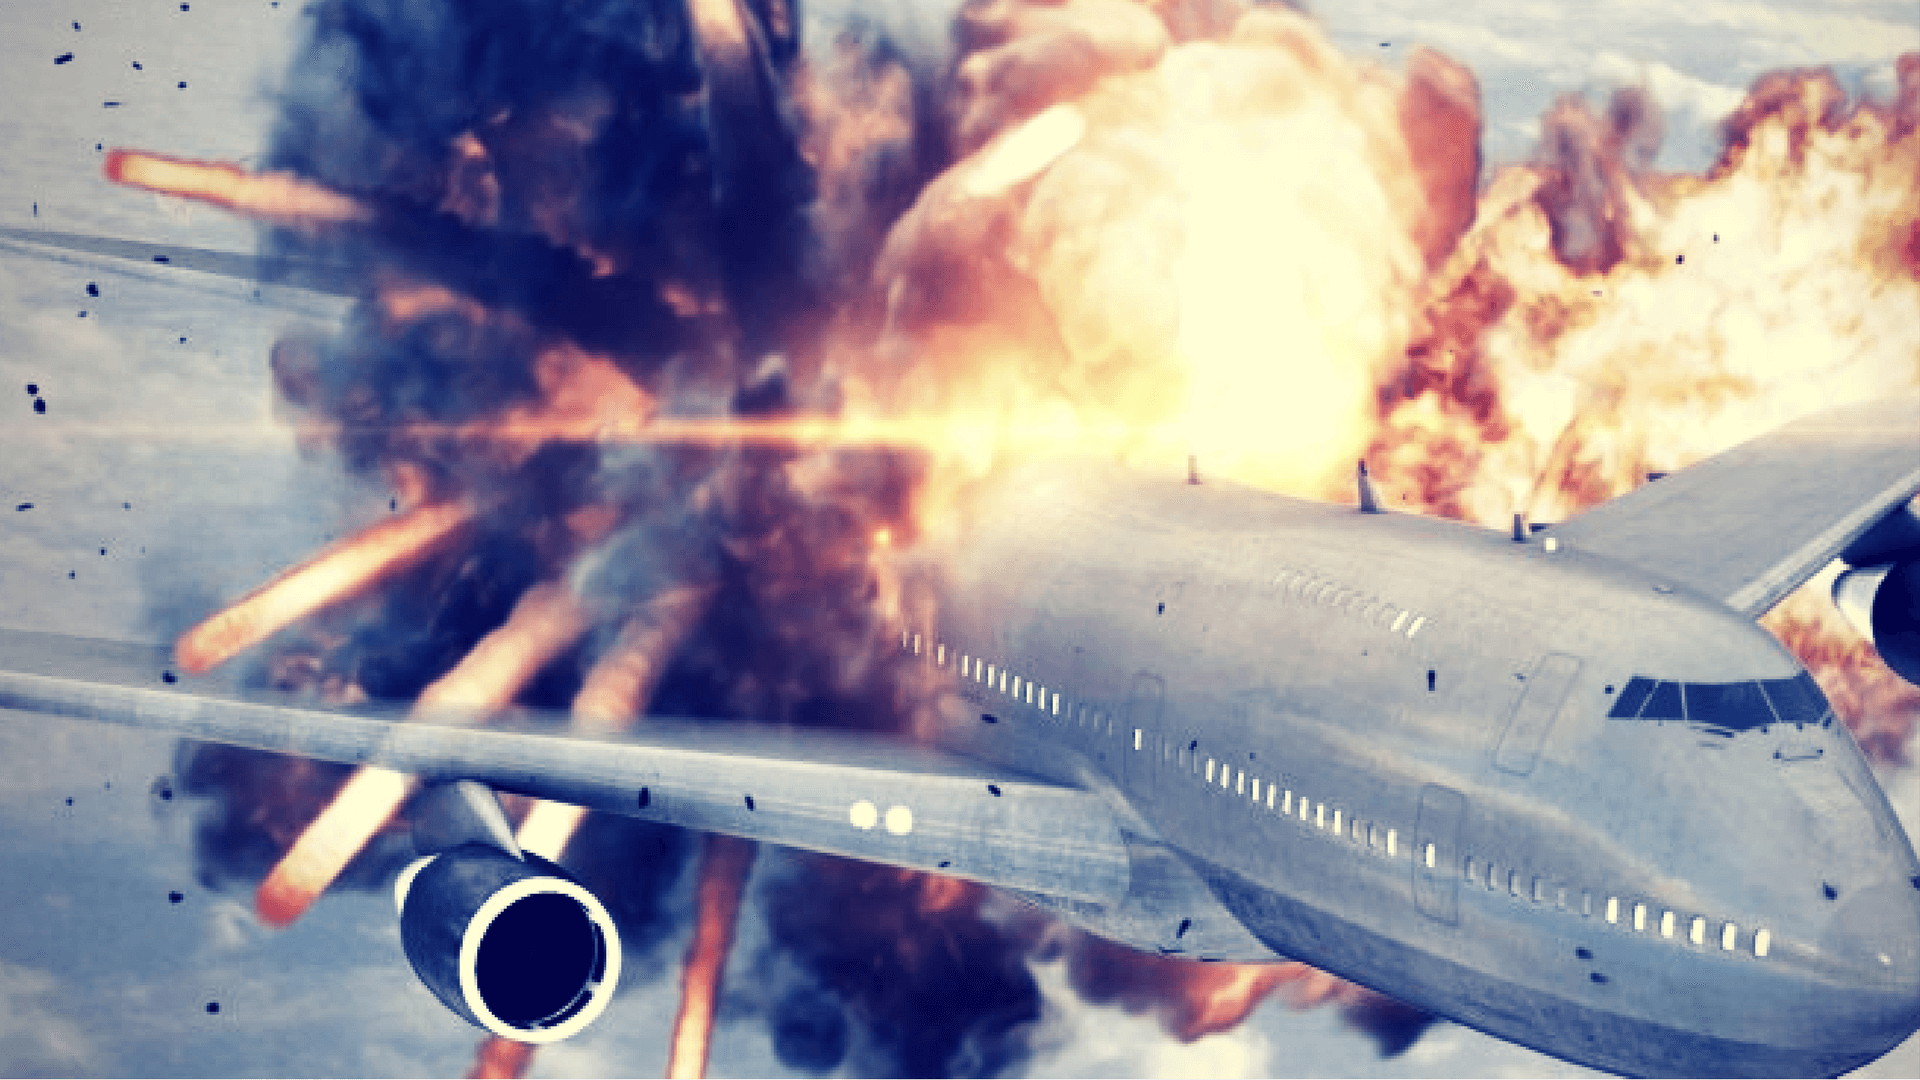 surviving an exploding plane